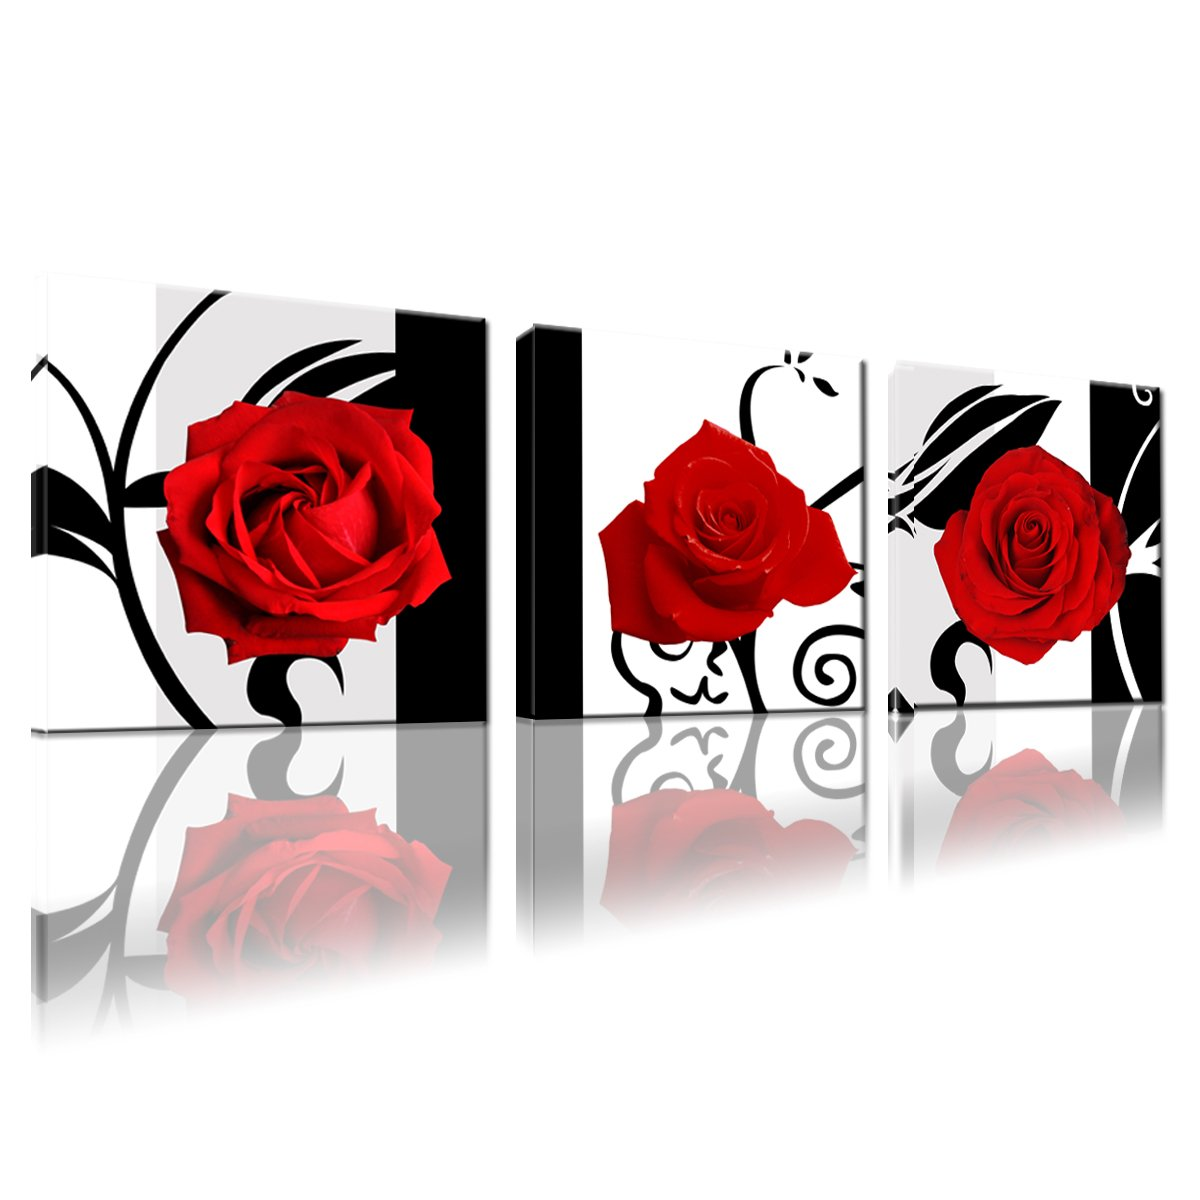 RED ROSE IN BLACK BACKGROUND PHOTO PRINT ON WOOD FRAMED CANVAS WALL ART